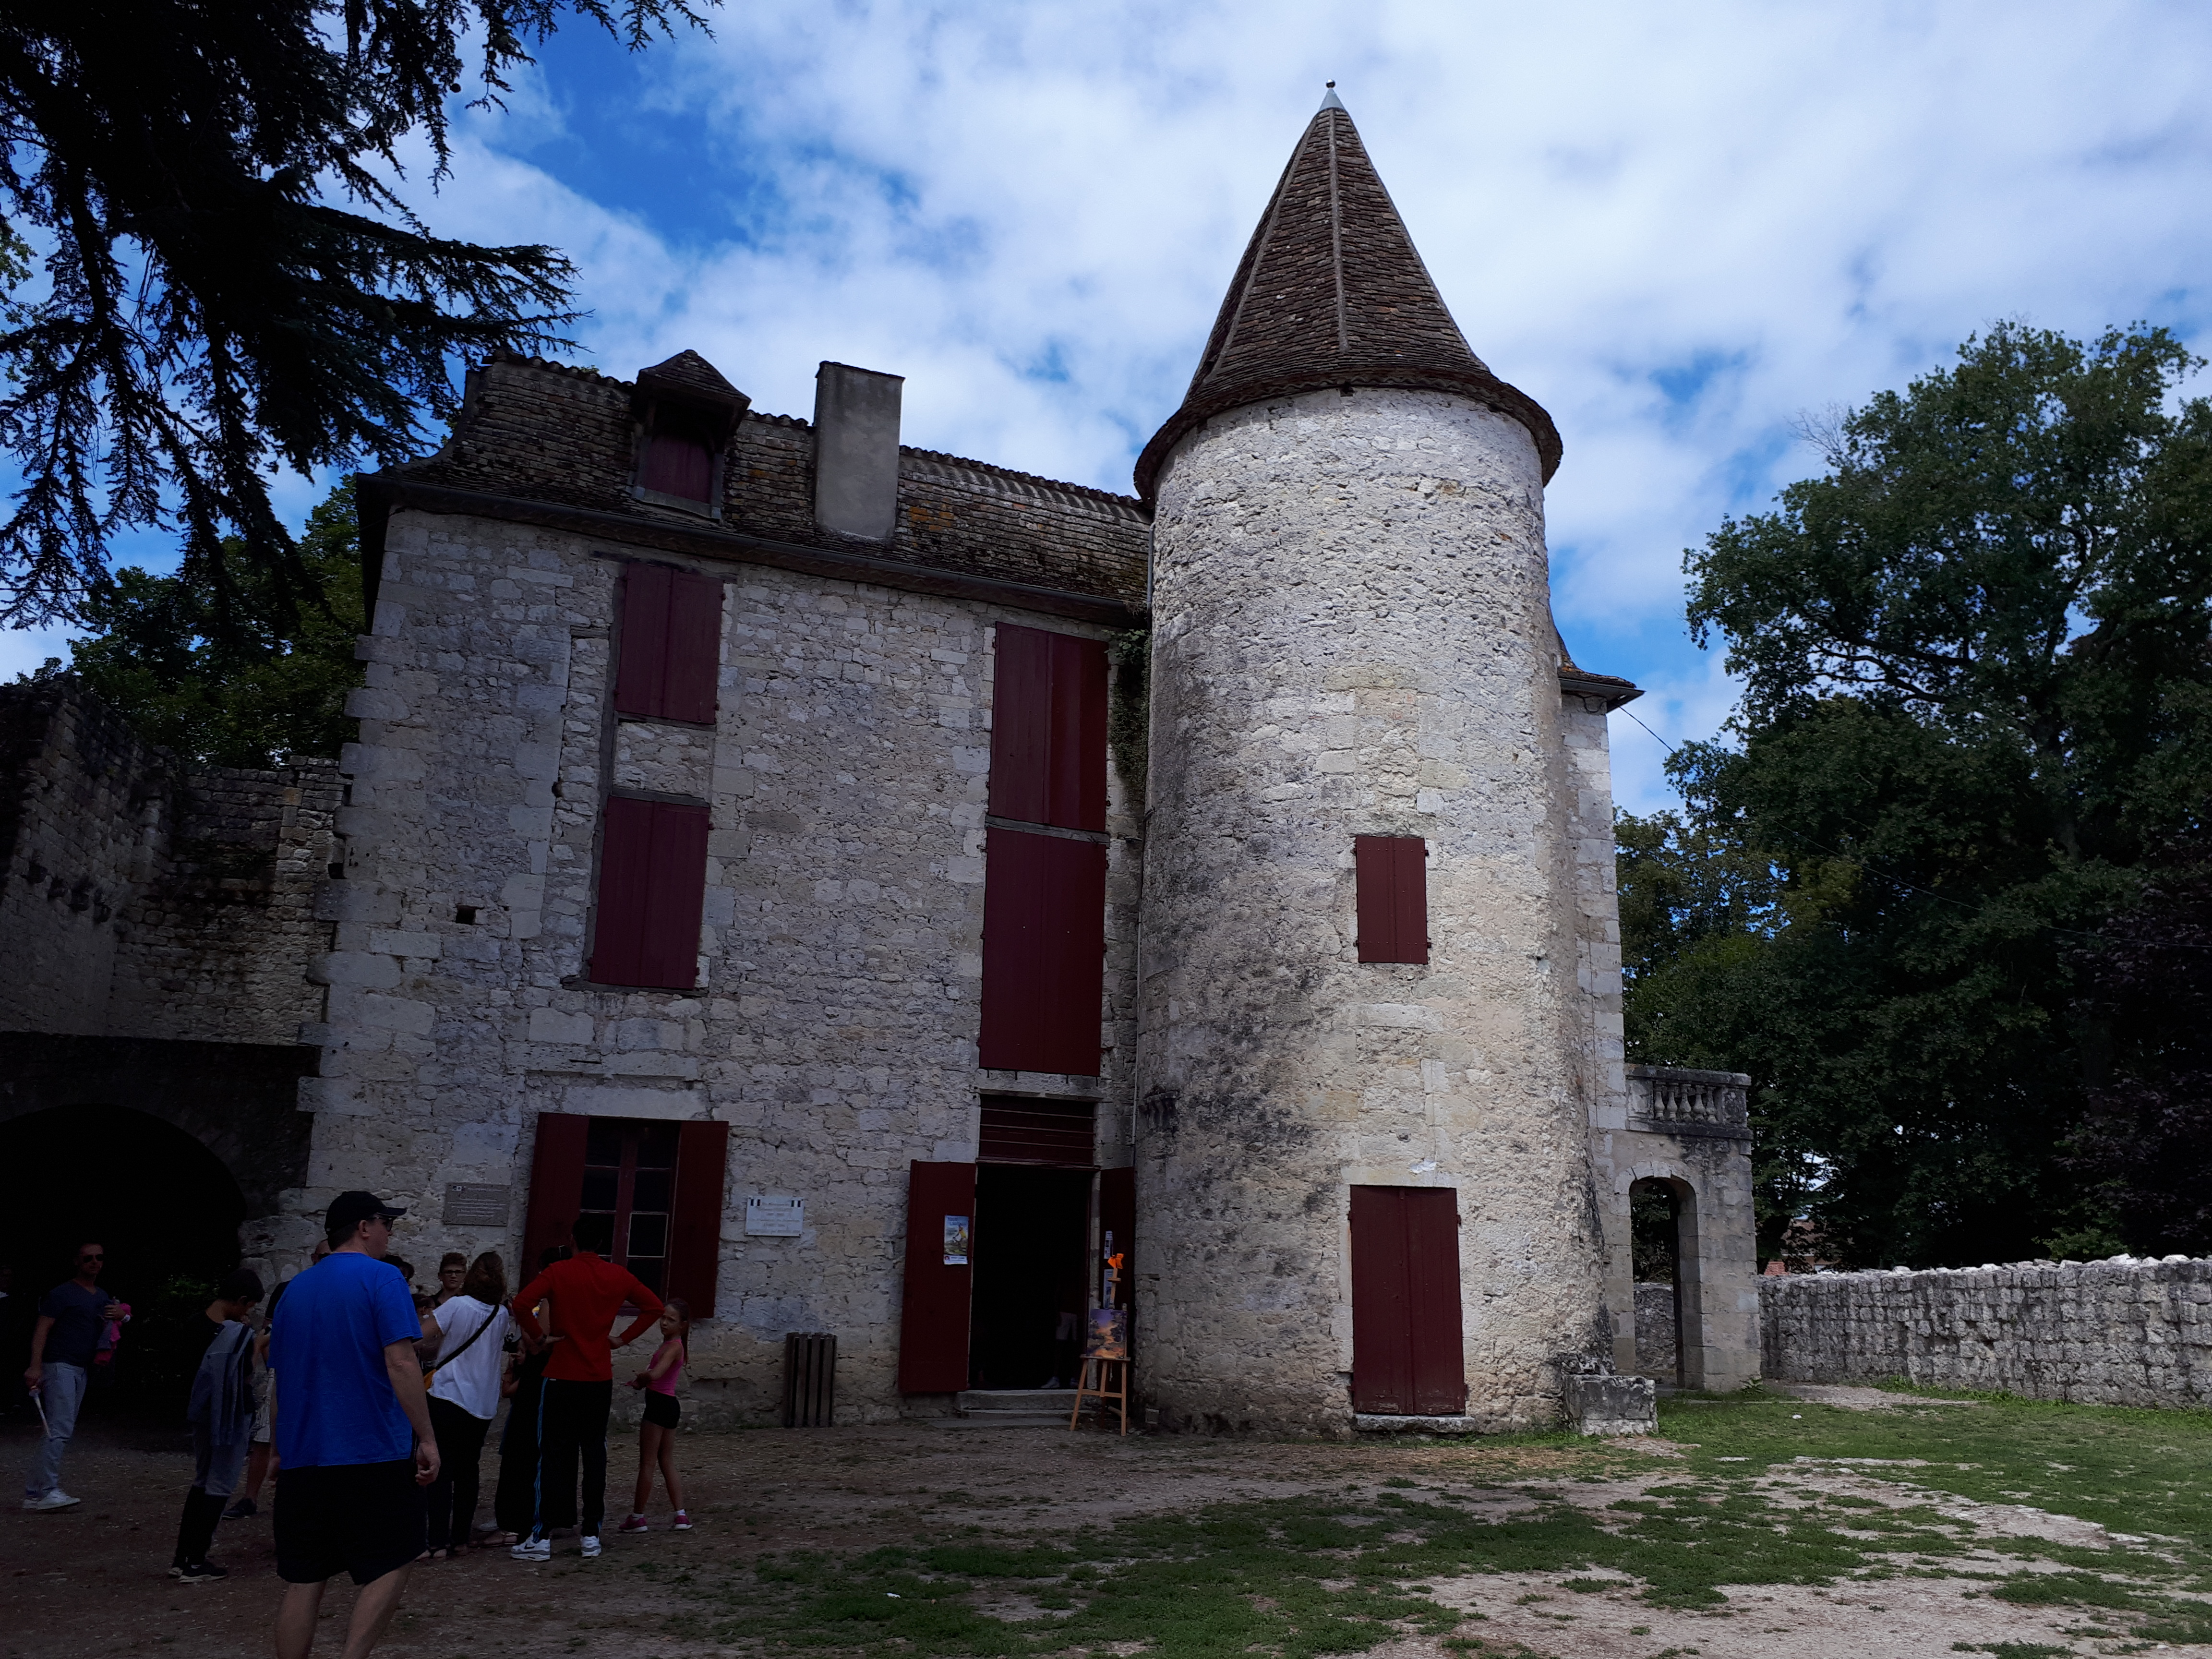 Eyrat manor or chateau